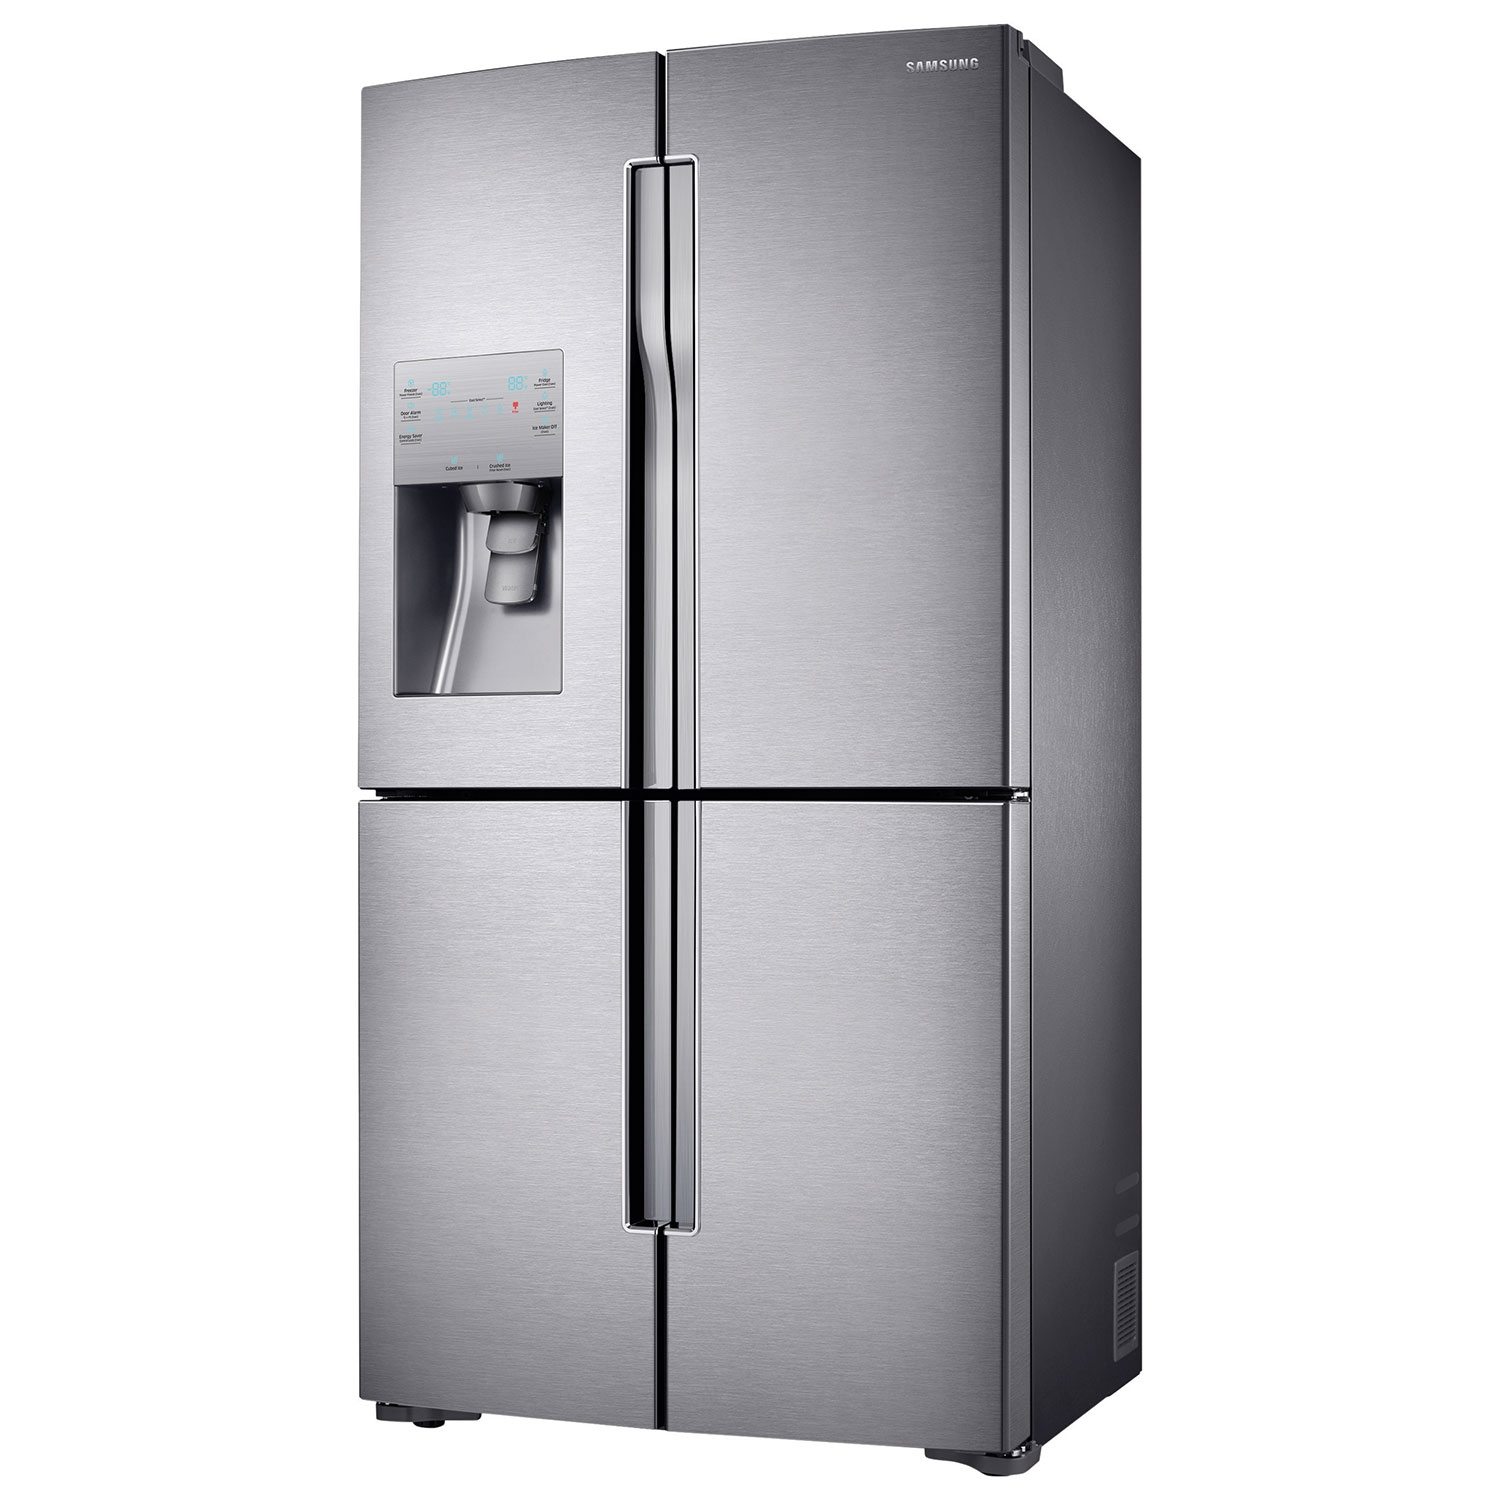 refrigerator 7 5 cu ft. samsung 7 5 cu ft 4 door french refrigerator a